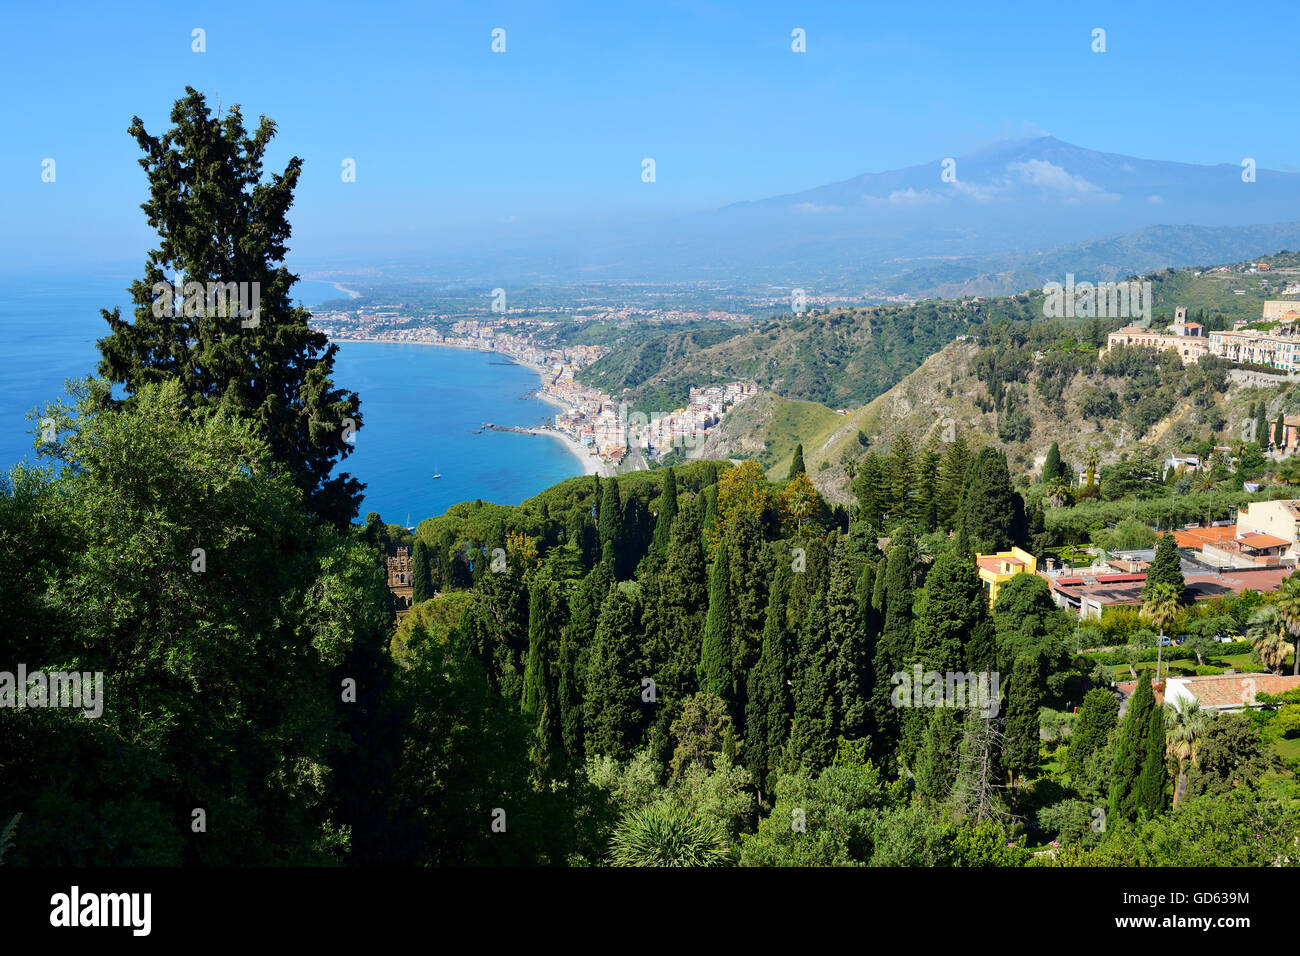 View of Mount Etna and east coastline from Taormina, Sicily, Italy - Stock Image